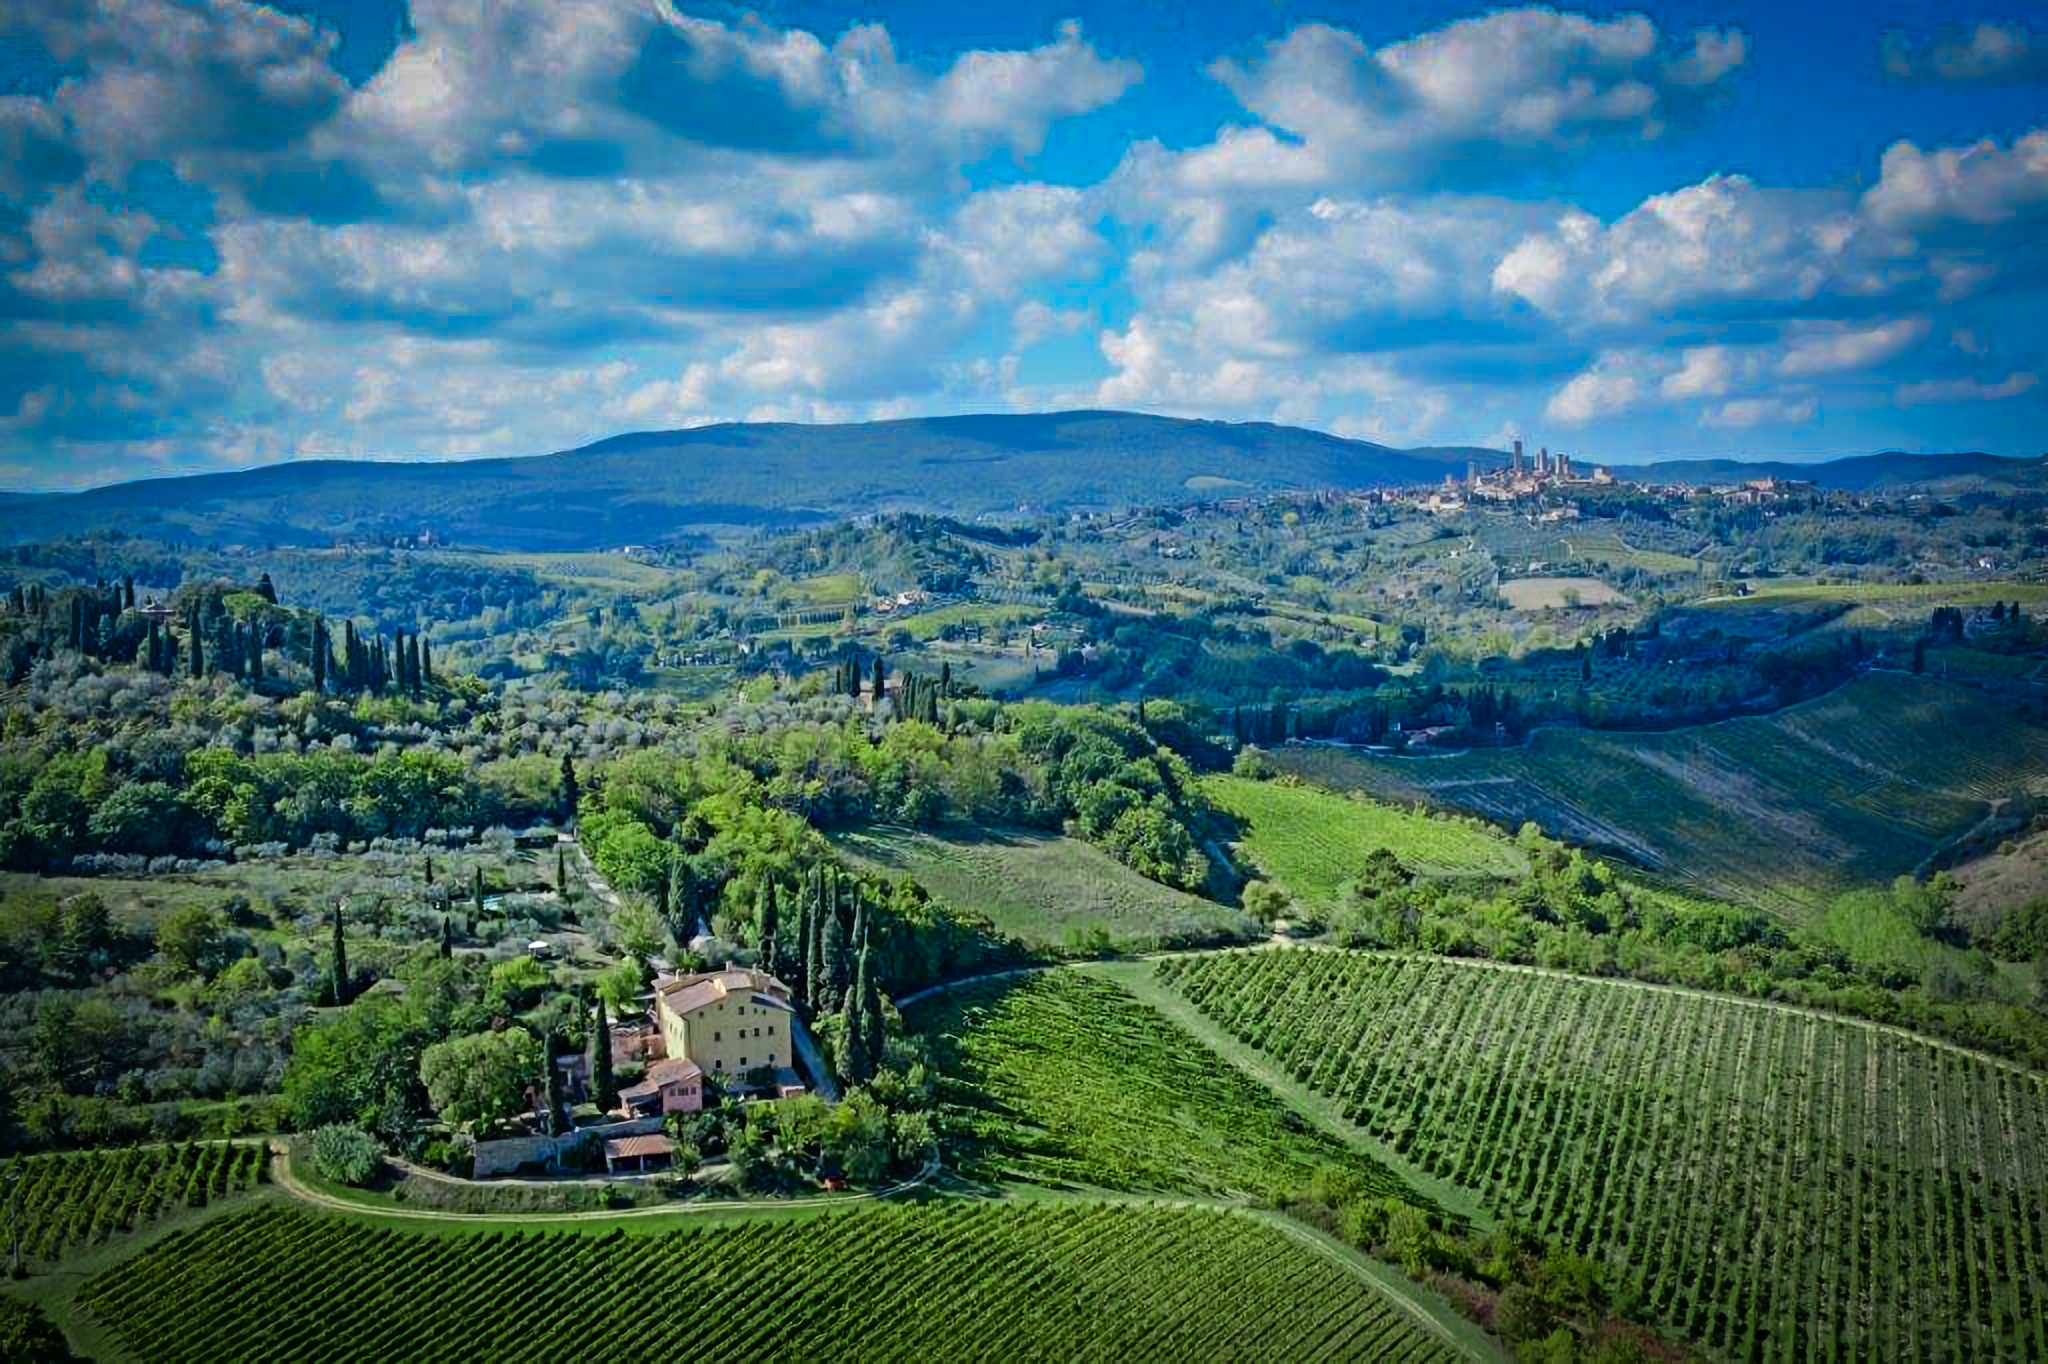 SAN GIMIGNANO: AGRITURISMO FOR SALE IN TUSCANY